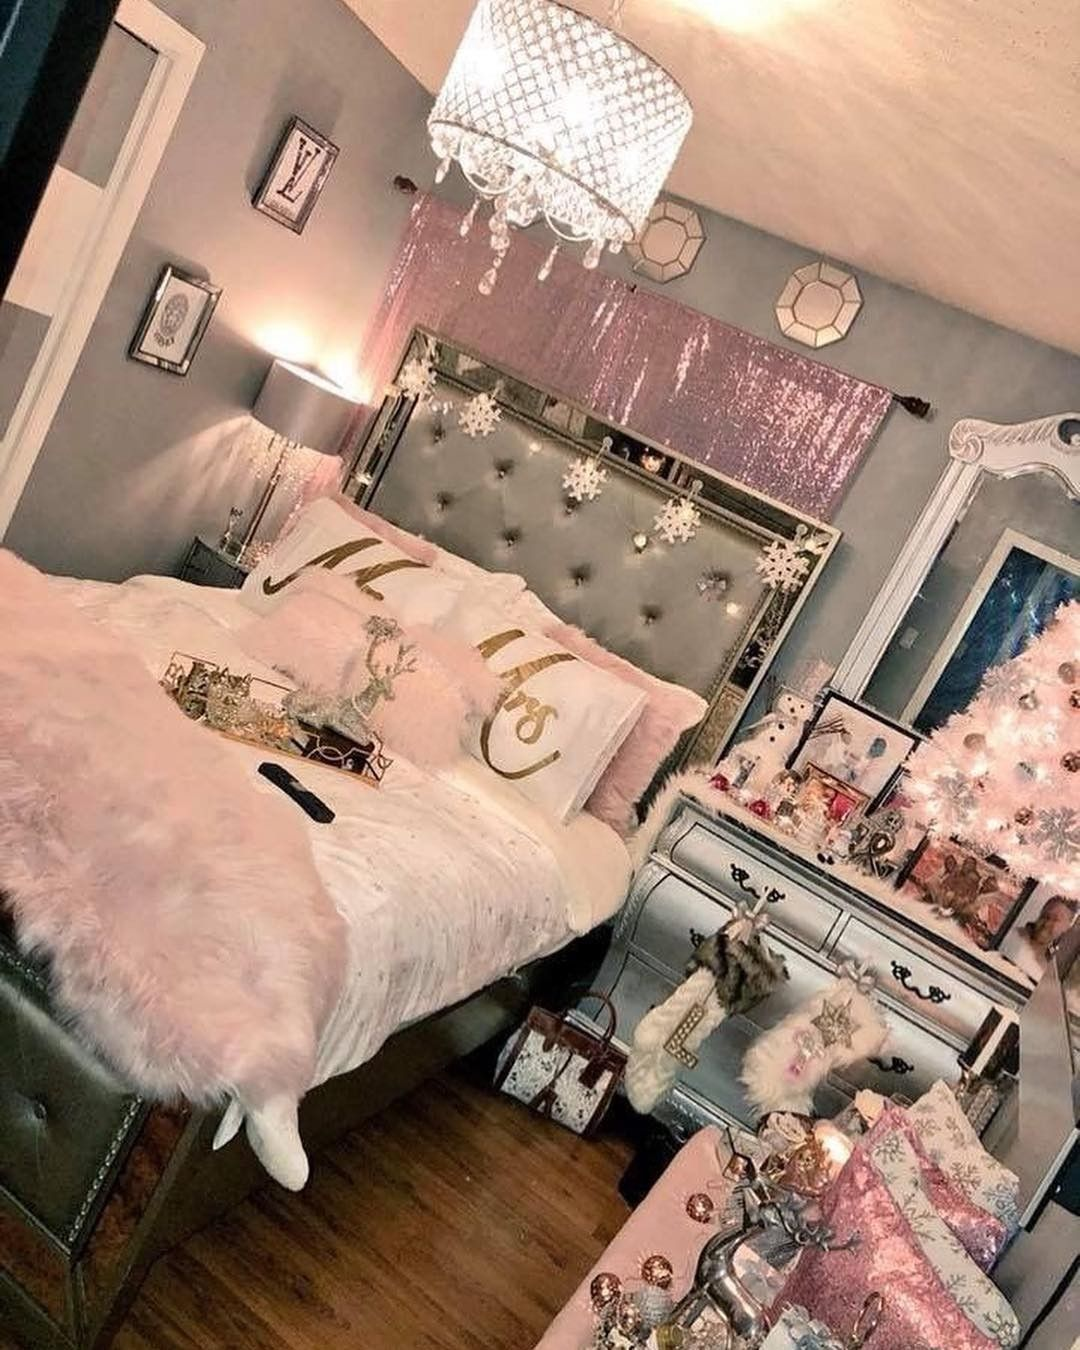 exciting cute girly bedroom ideas | Pinterest ~Girly Girl Add me for More!!!😏 | outfits in ...